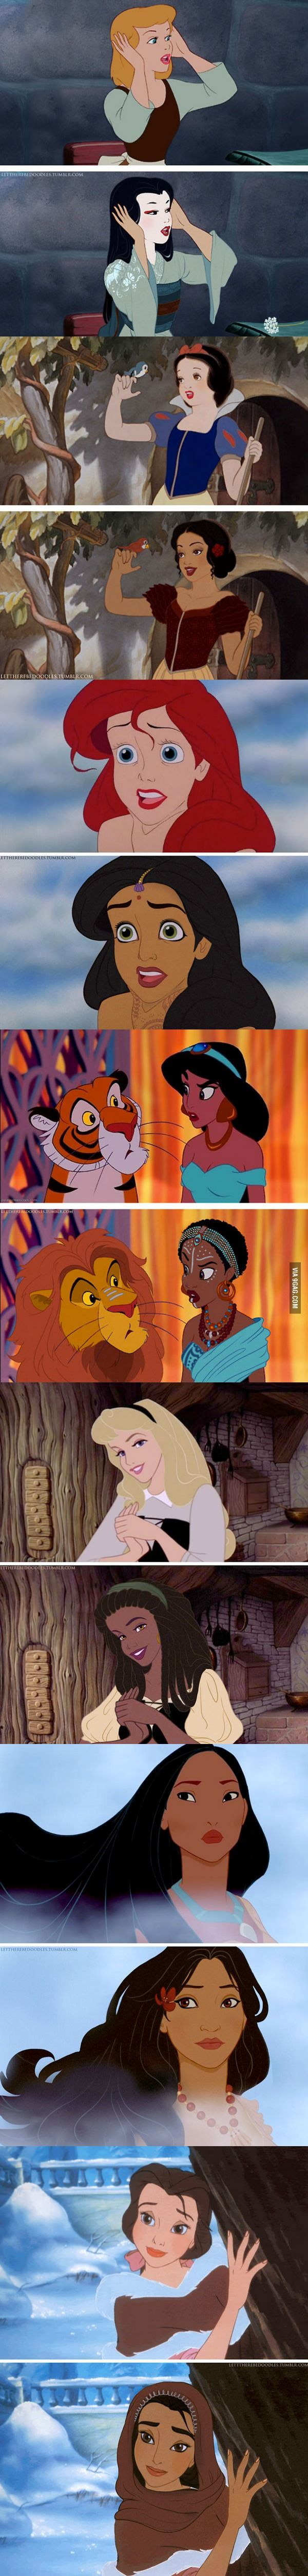 An Artist Re-imagined Disney Princesses With Different Races